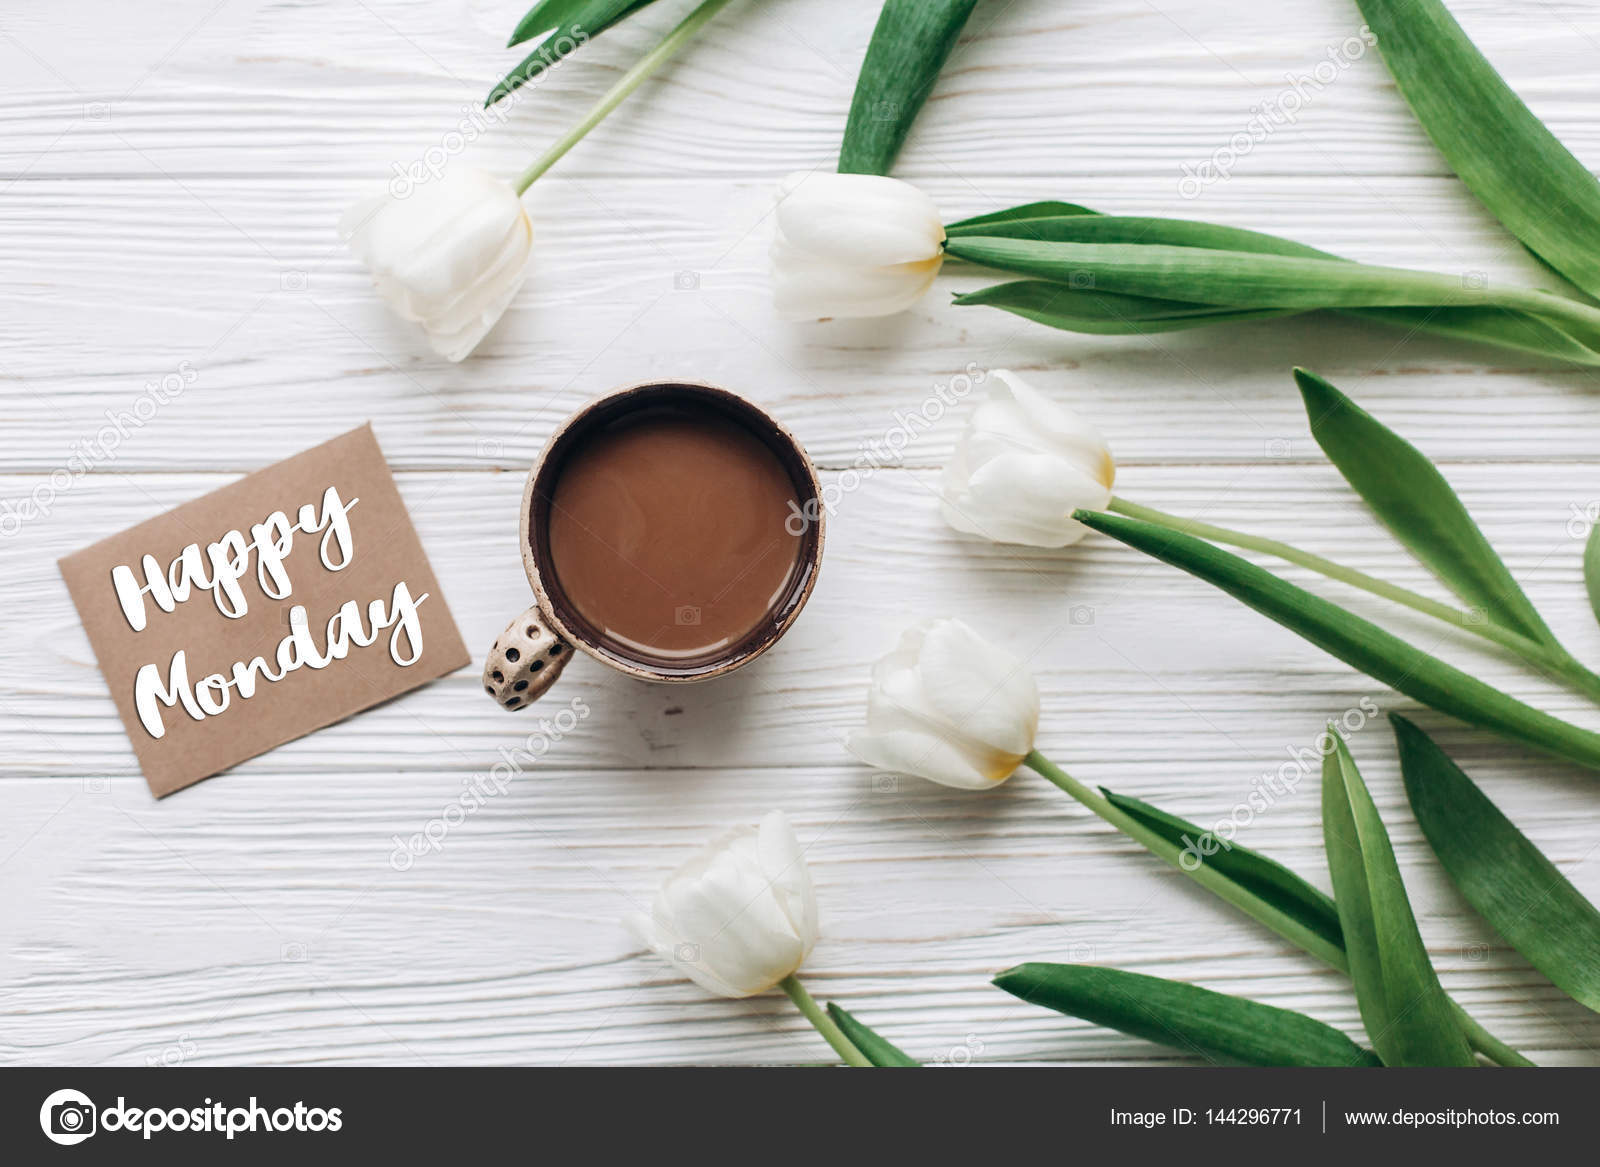 Happy monday text on greeting card stock photo sonyachny 144296771 happy monday text on greeting card stock photo m4hsunfo